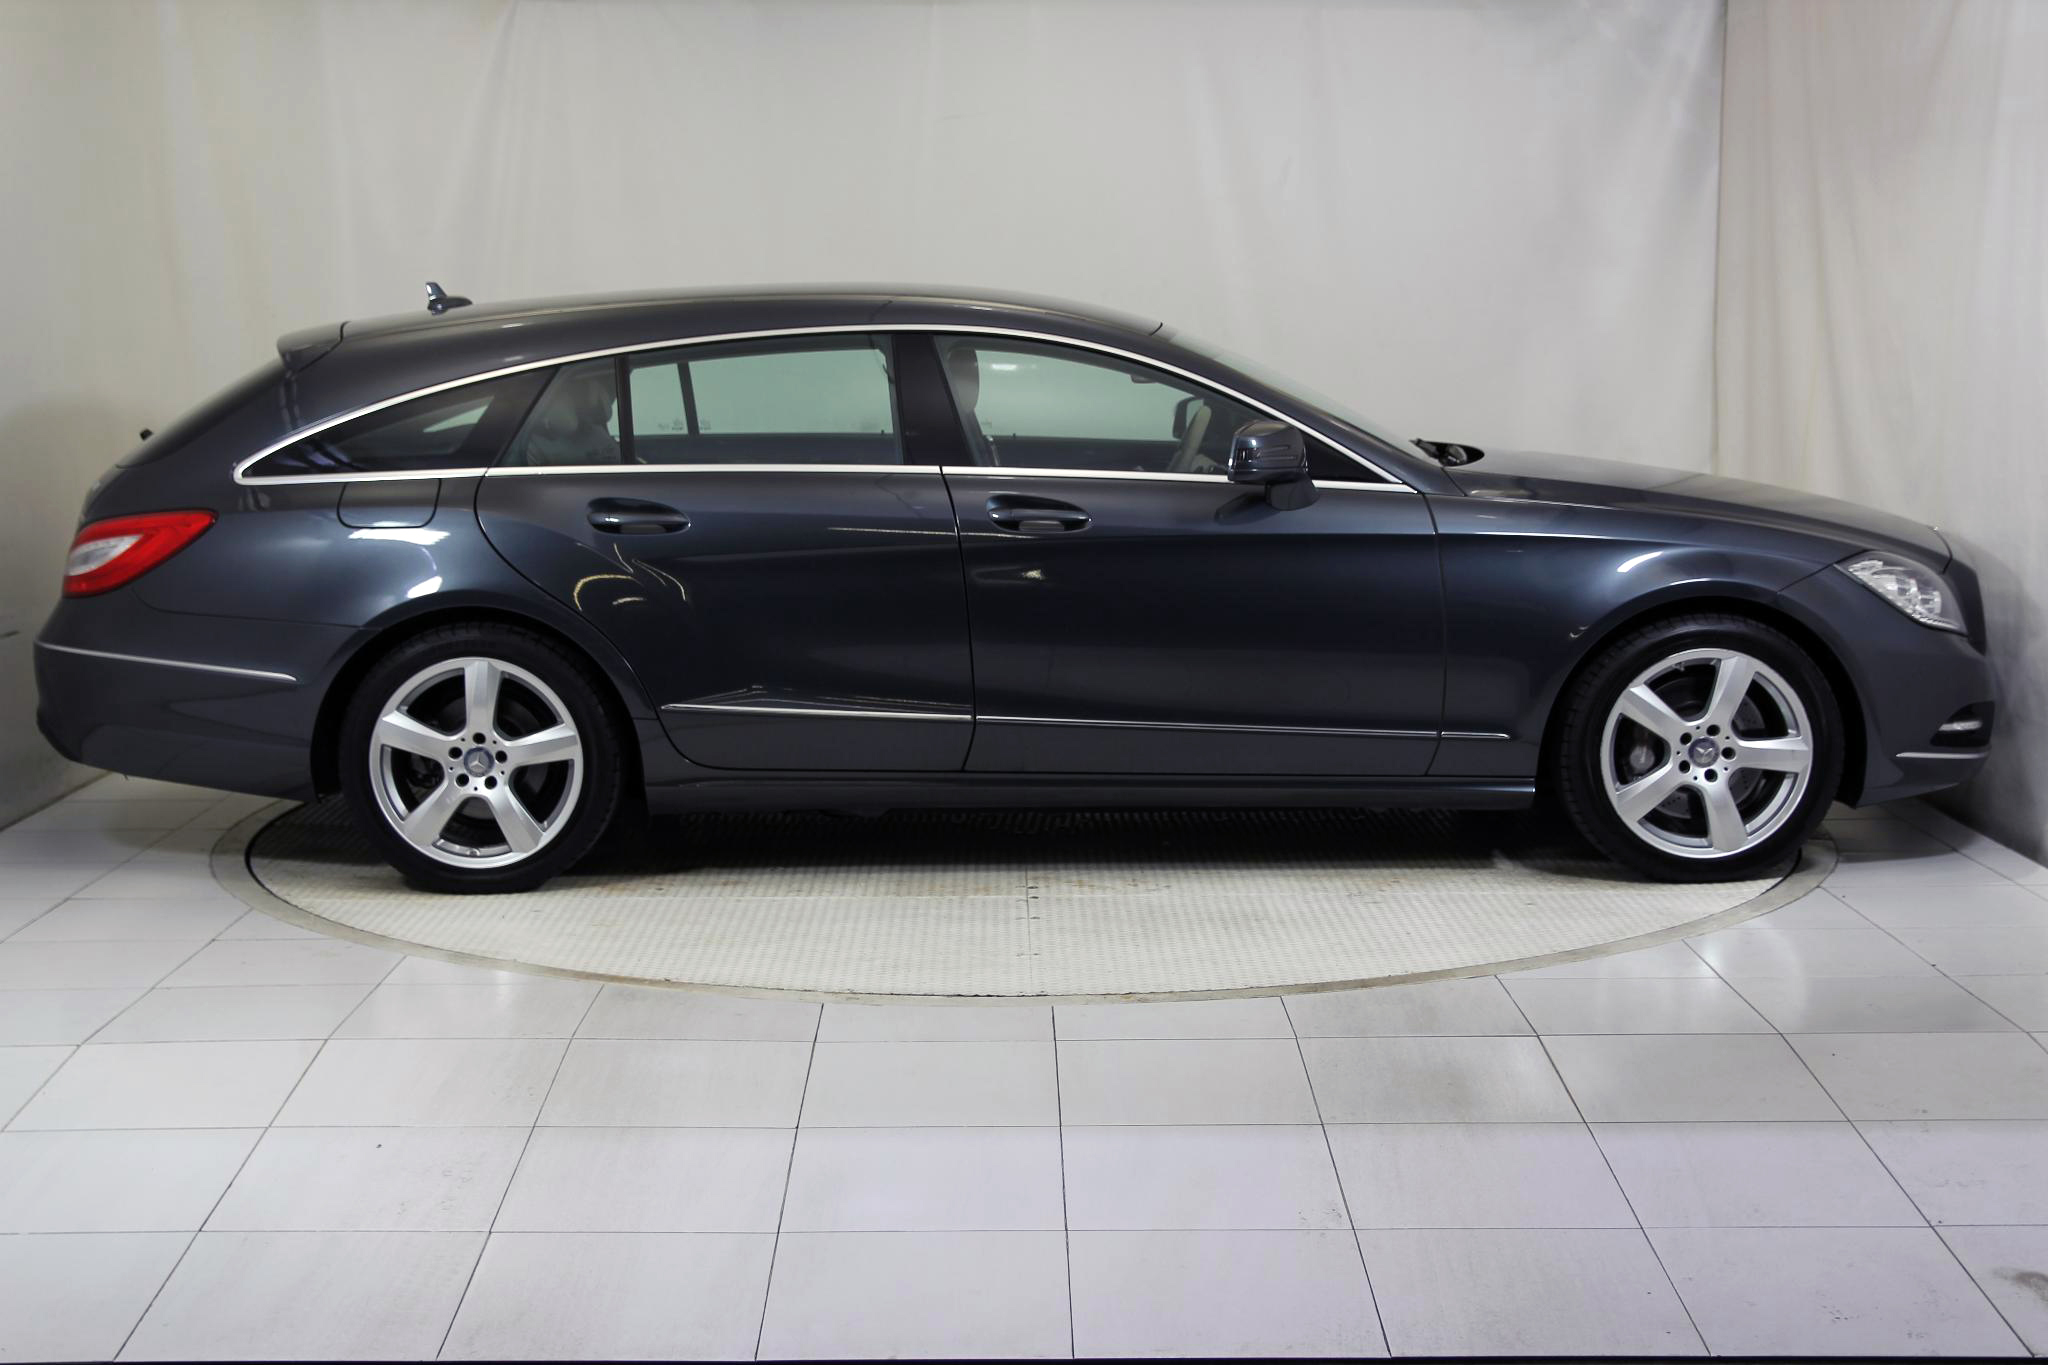 Mercedes-Benz Clase CLS CLS SHOOTING BRAKE 350 CDI AUTO imagen 5